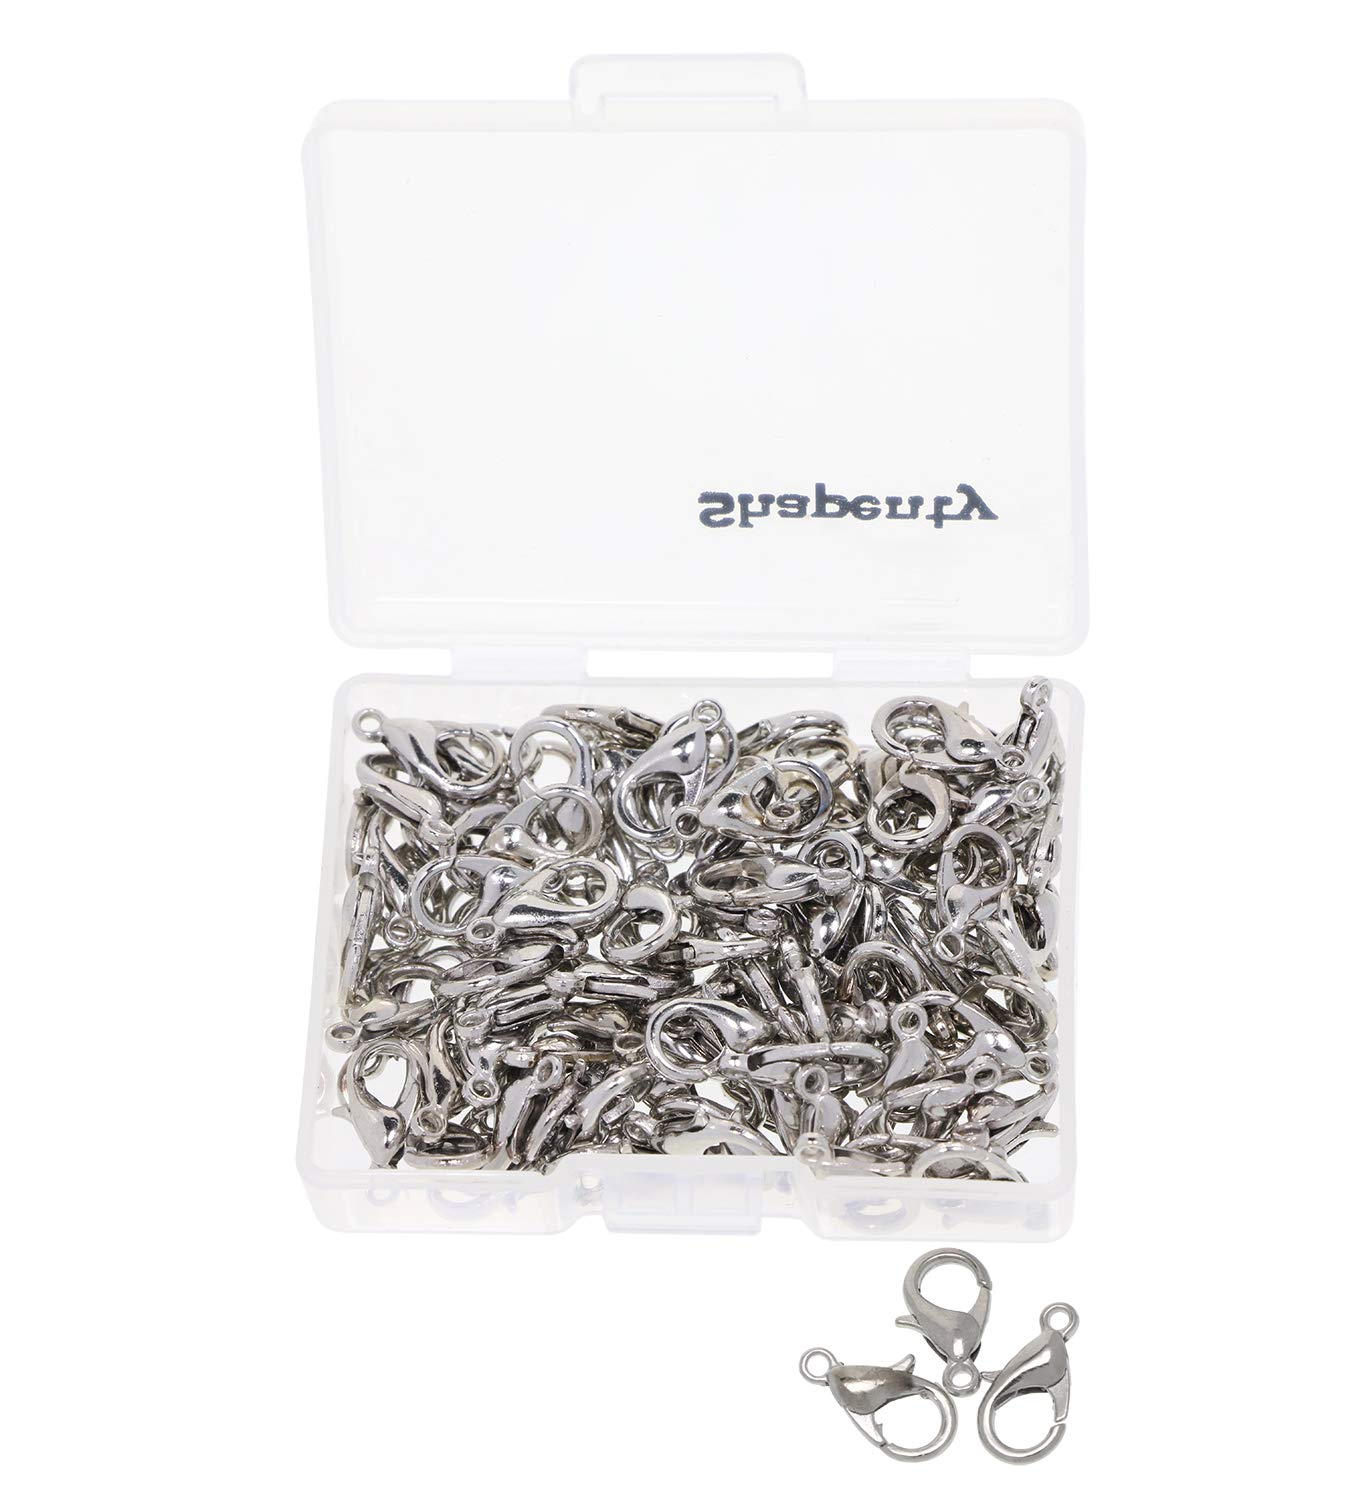 12mmx6mm 100PCS Shapenty Small Metal Alloy Lobster Claw Clasps Clip DIY Necklace Jewelry Finding Making Accessories Fastener Hook Silver